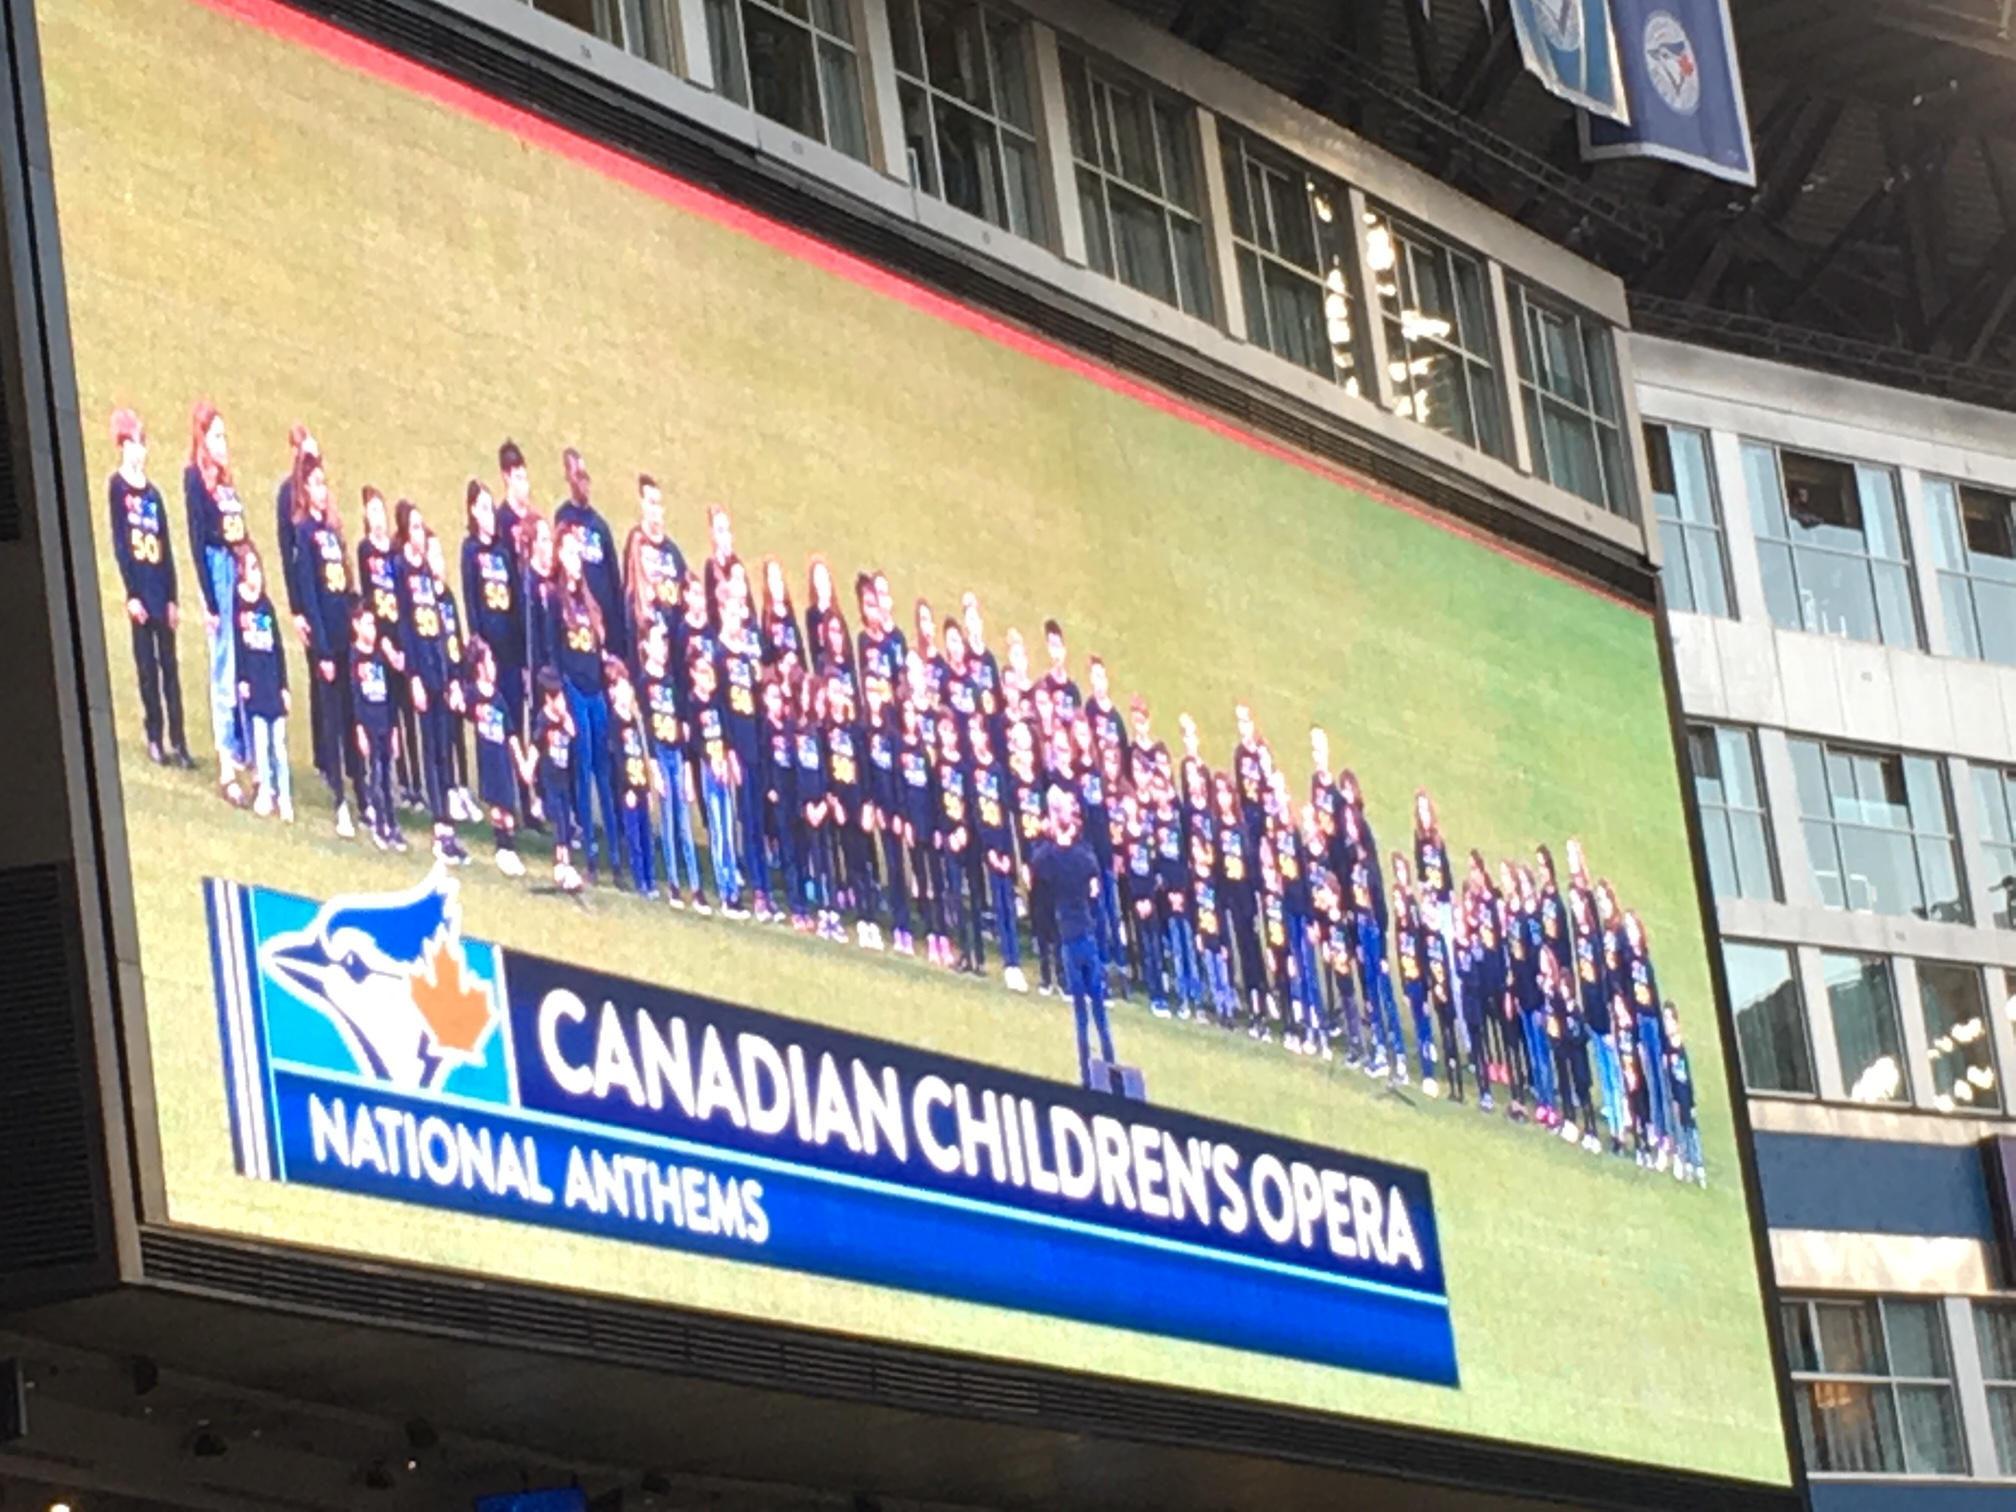 Children shown on large screen in Rogers Centre